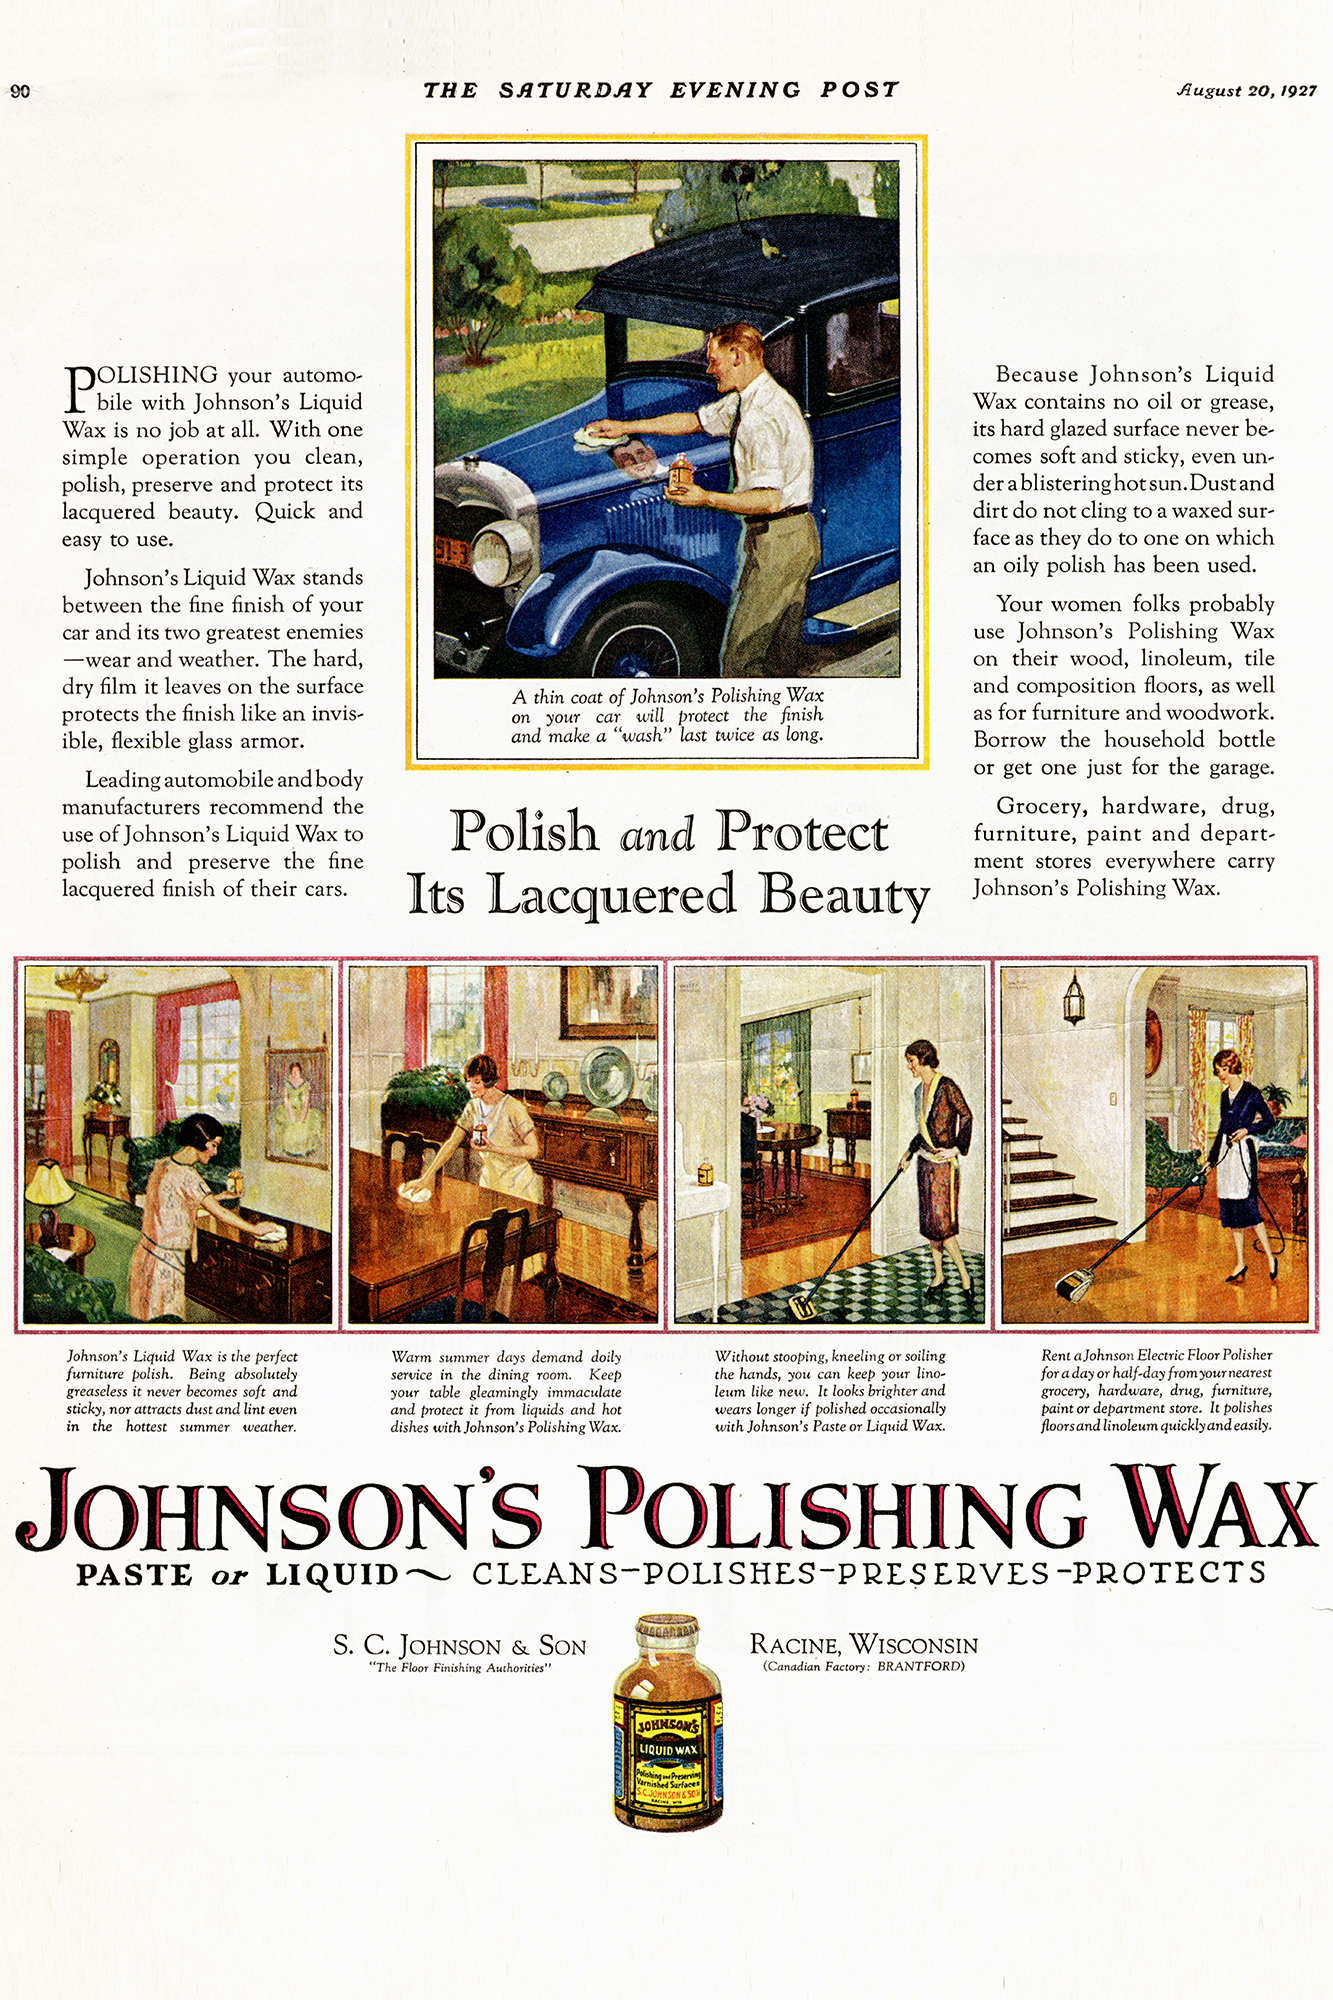 1927 Johnson's Wax advertisement in Saturday Evening Post